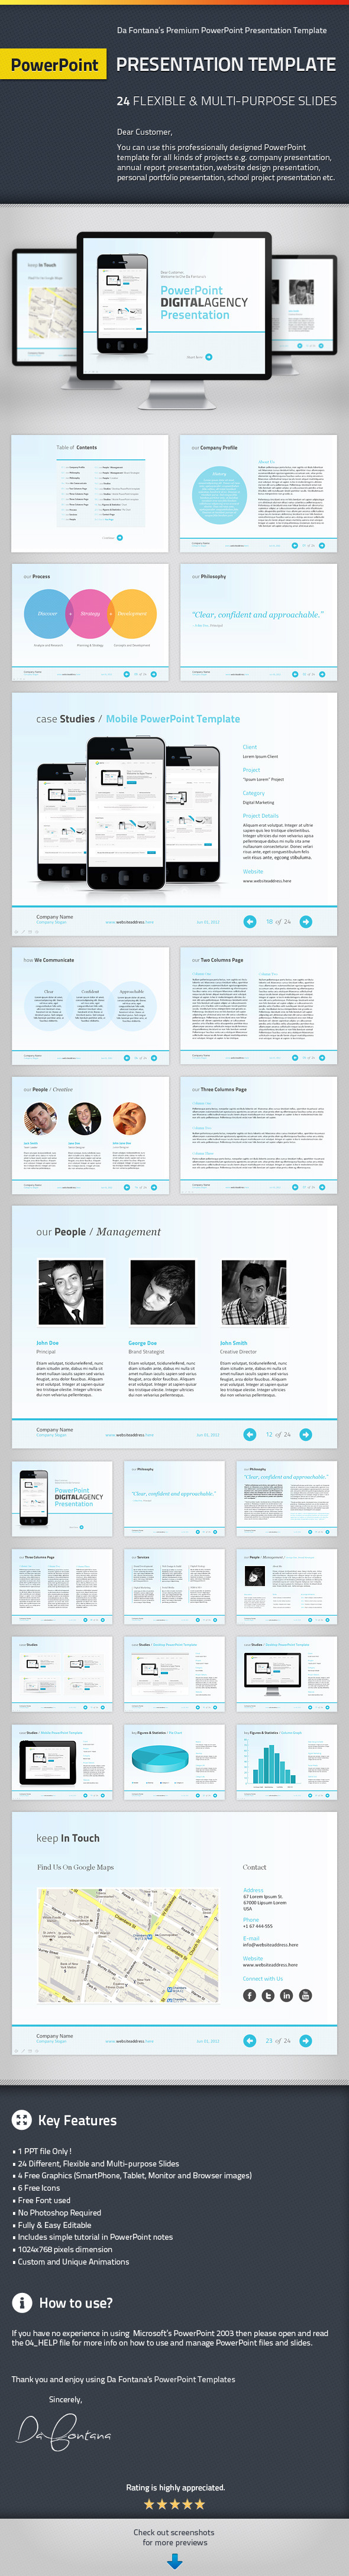 PowerPoint Agency / Personal Presentation Template - Powerpoint Templates Presentation Templates